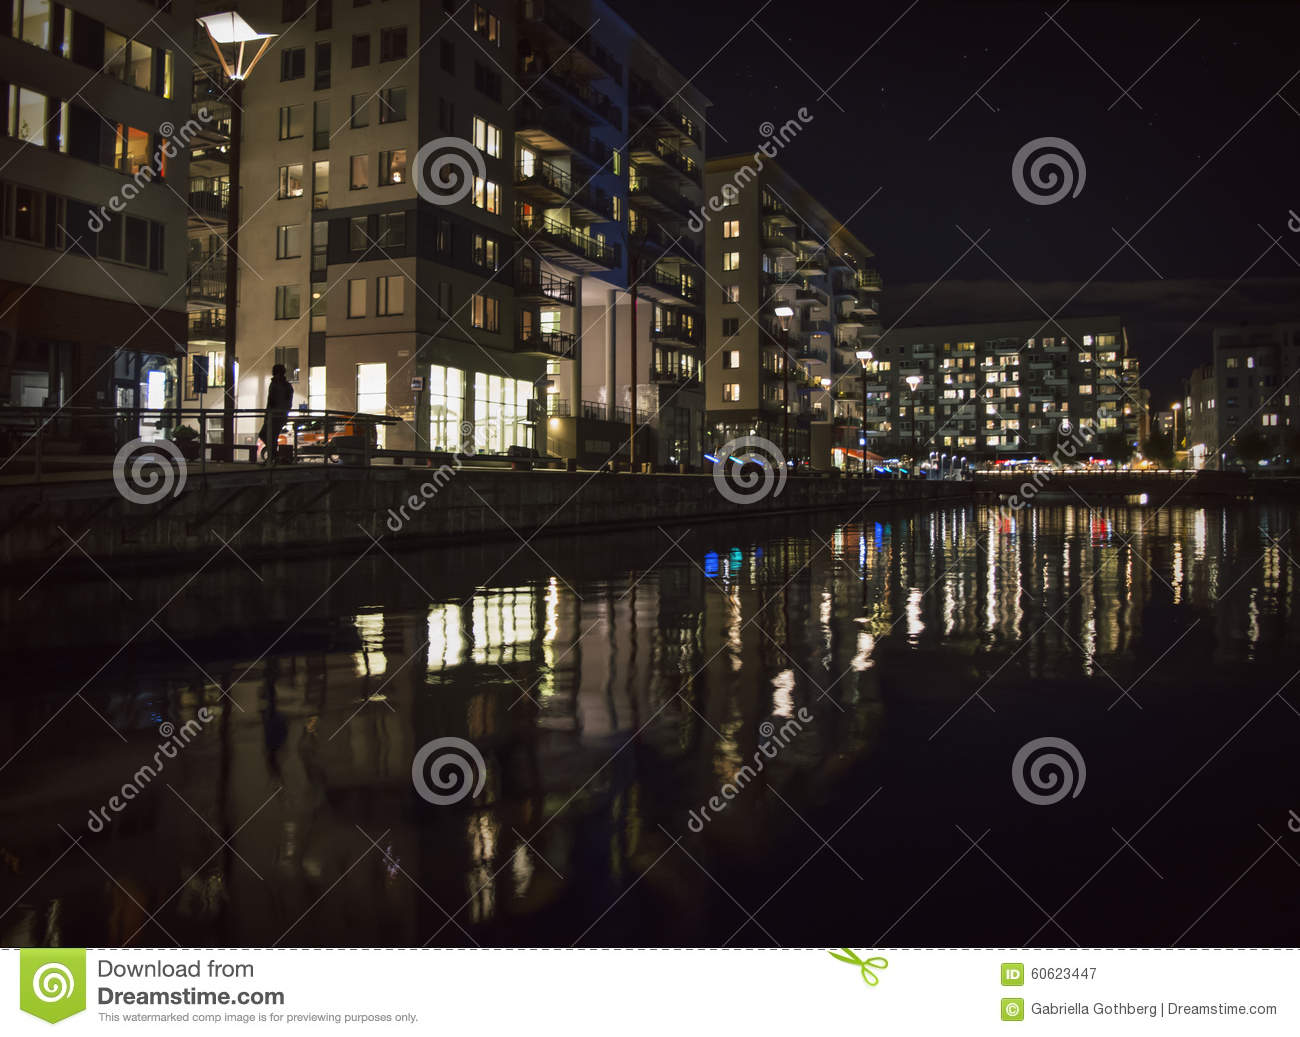 City lights reflected in water. Silhouette under a streetlight.